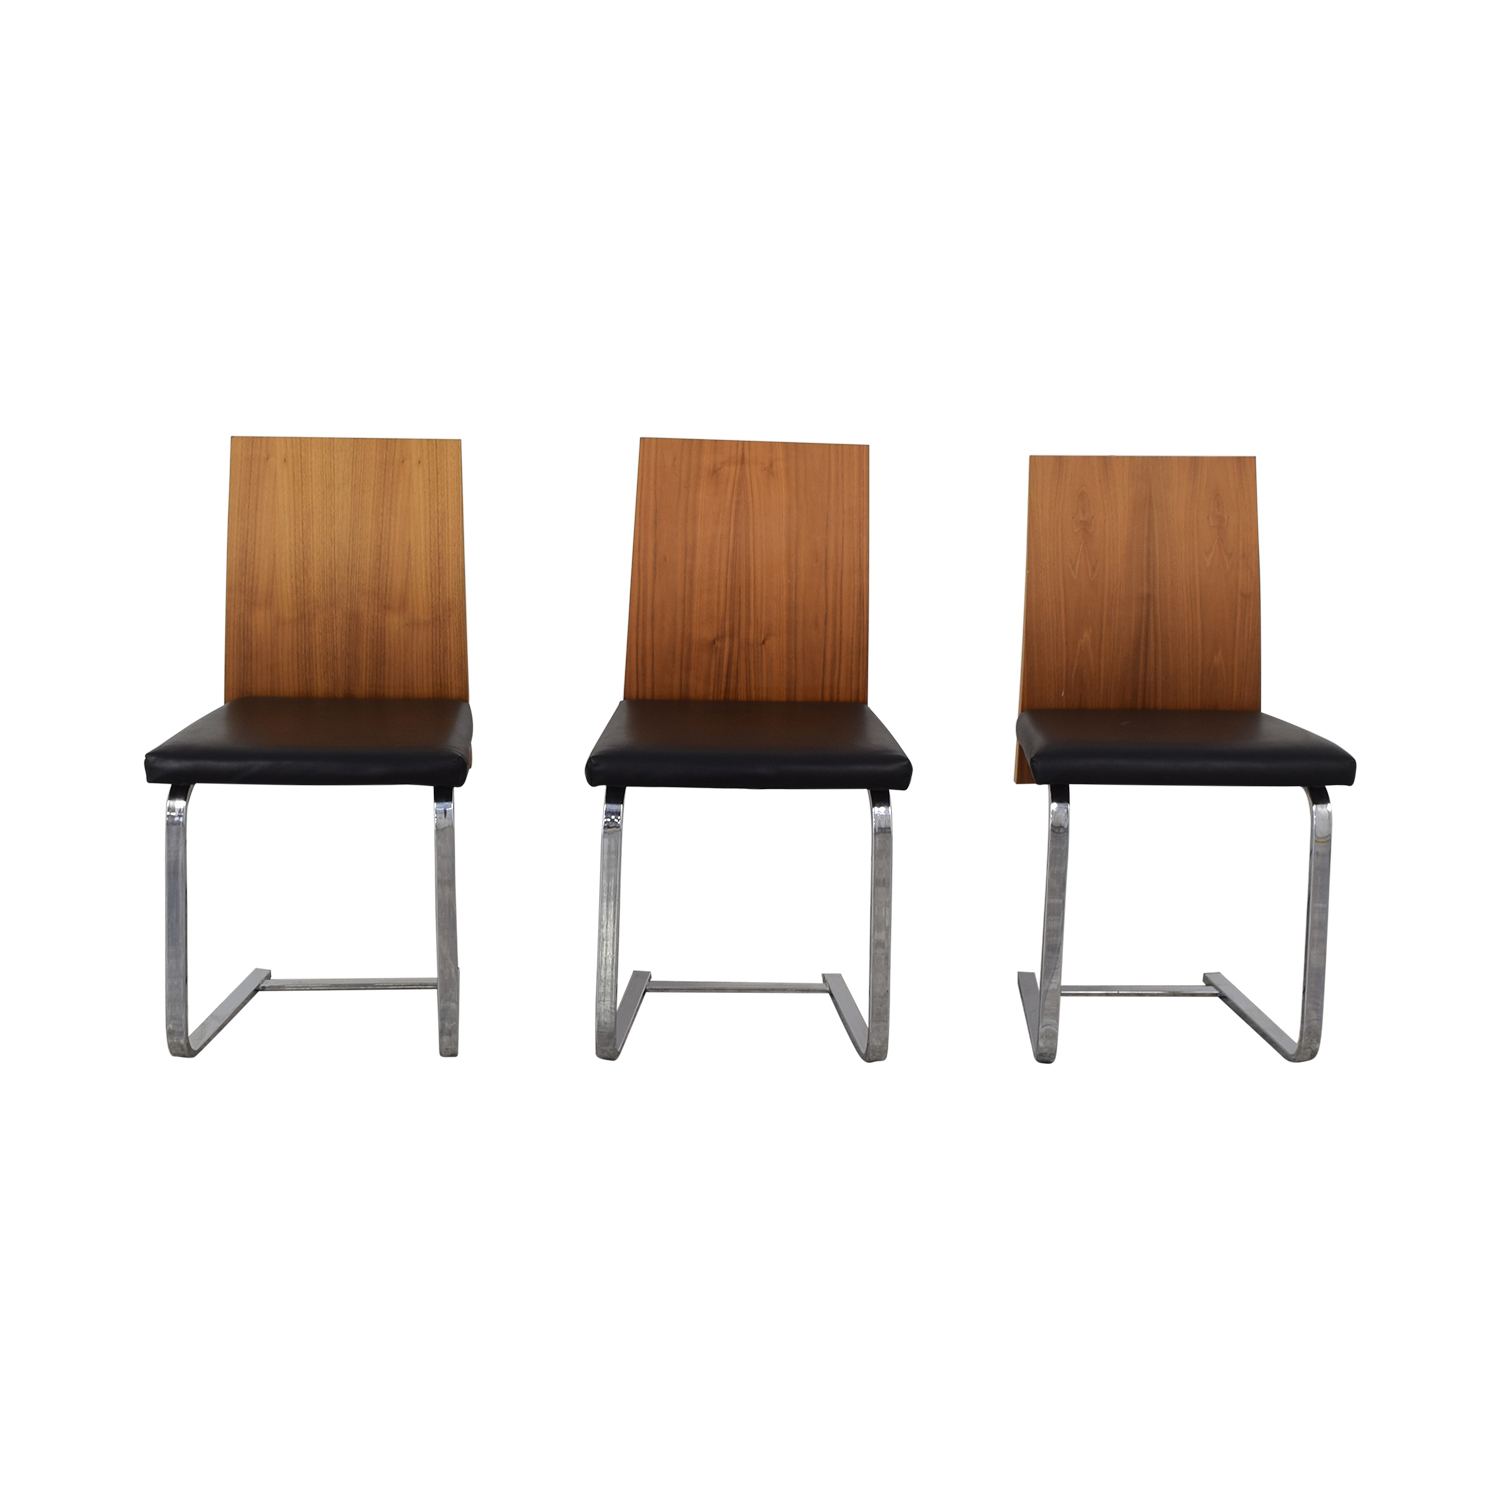 shop Domitalia Domitalia Jeff-sl Chrome Black Leather and Wood Dining Chairs online